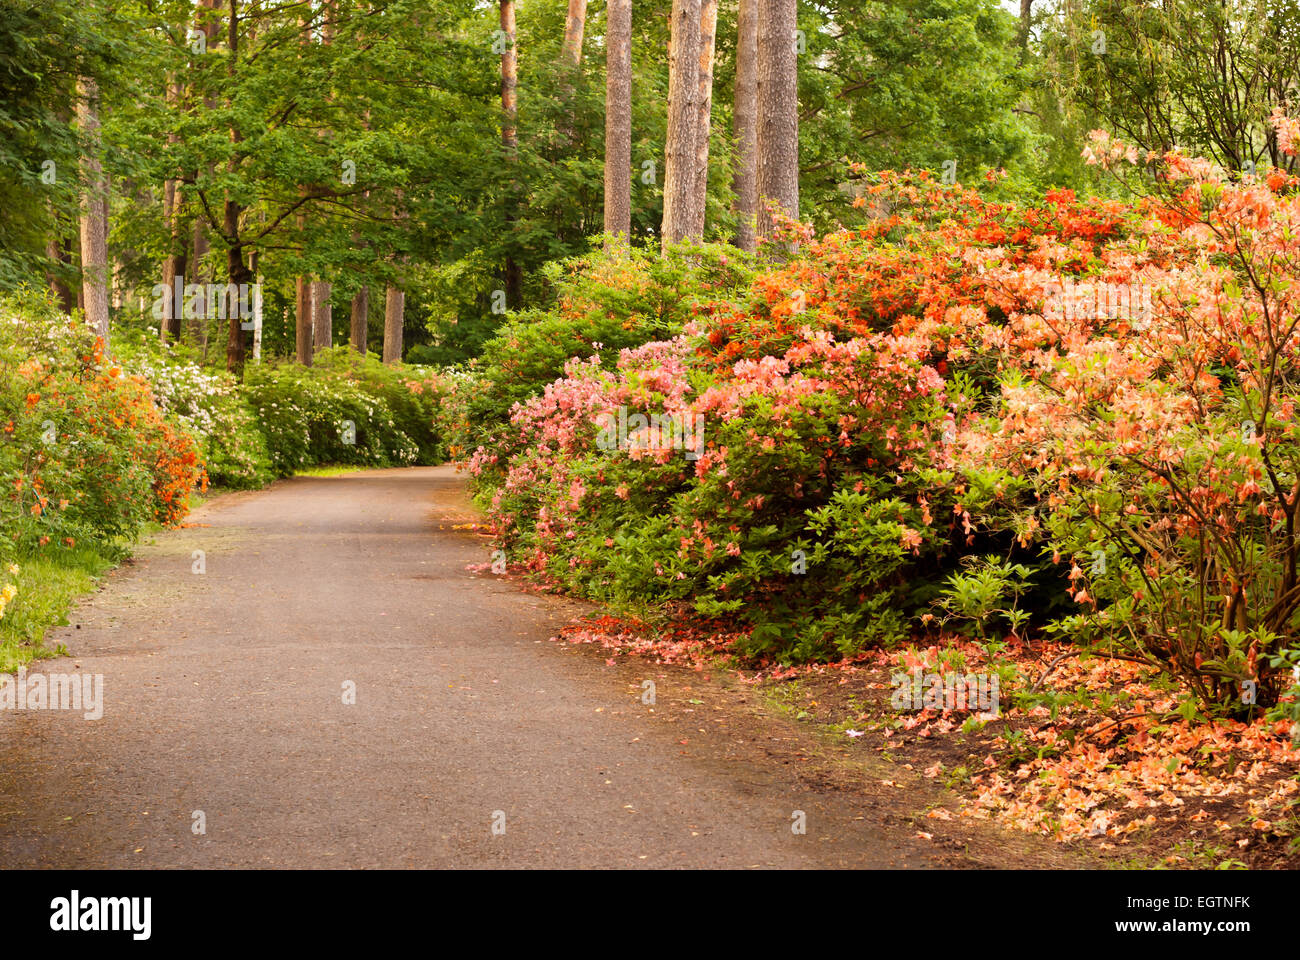 Shrubbery flowering rododendrons. Parkway with the blossoming rhododendrons - Stock Image